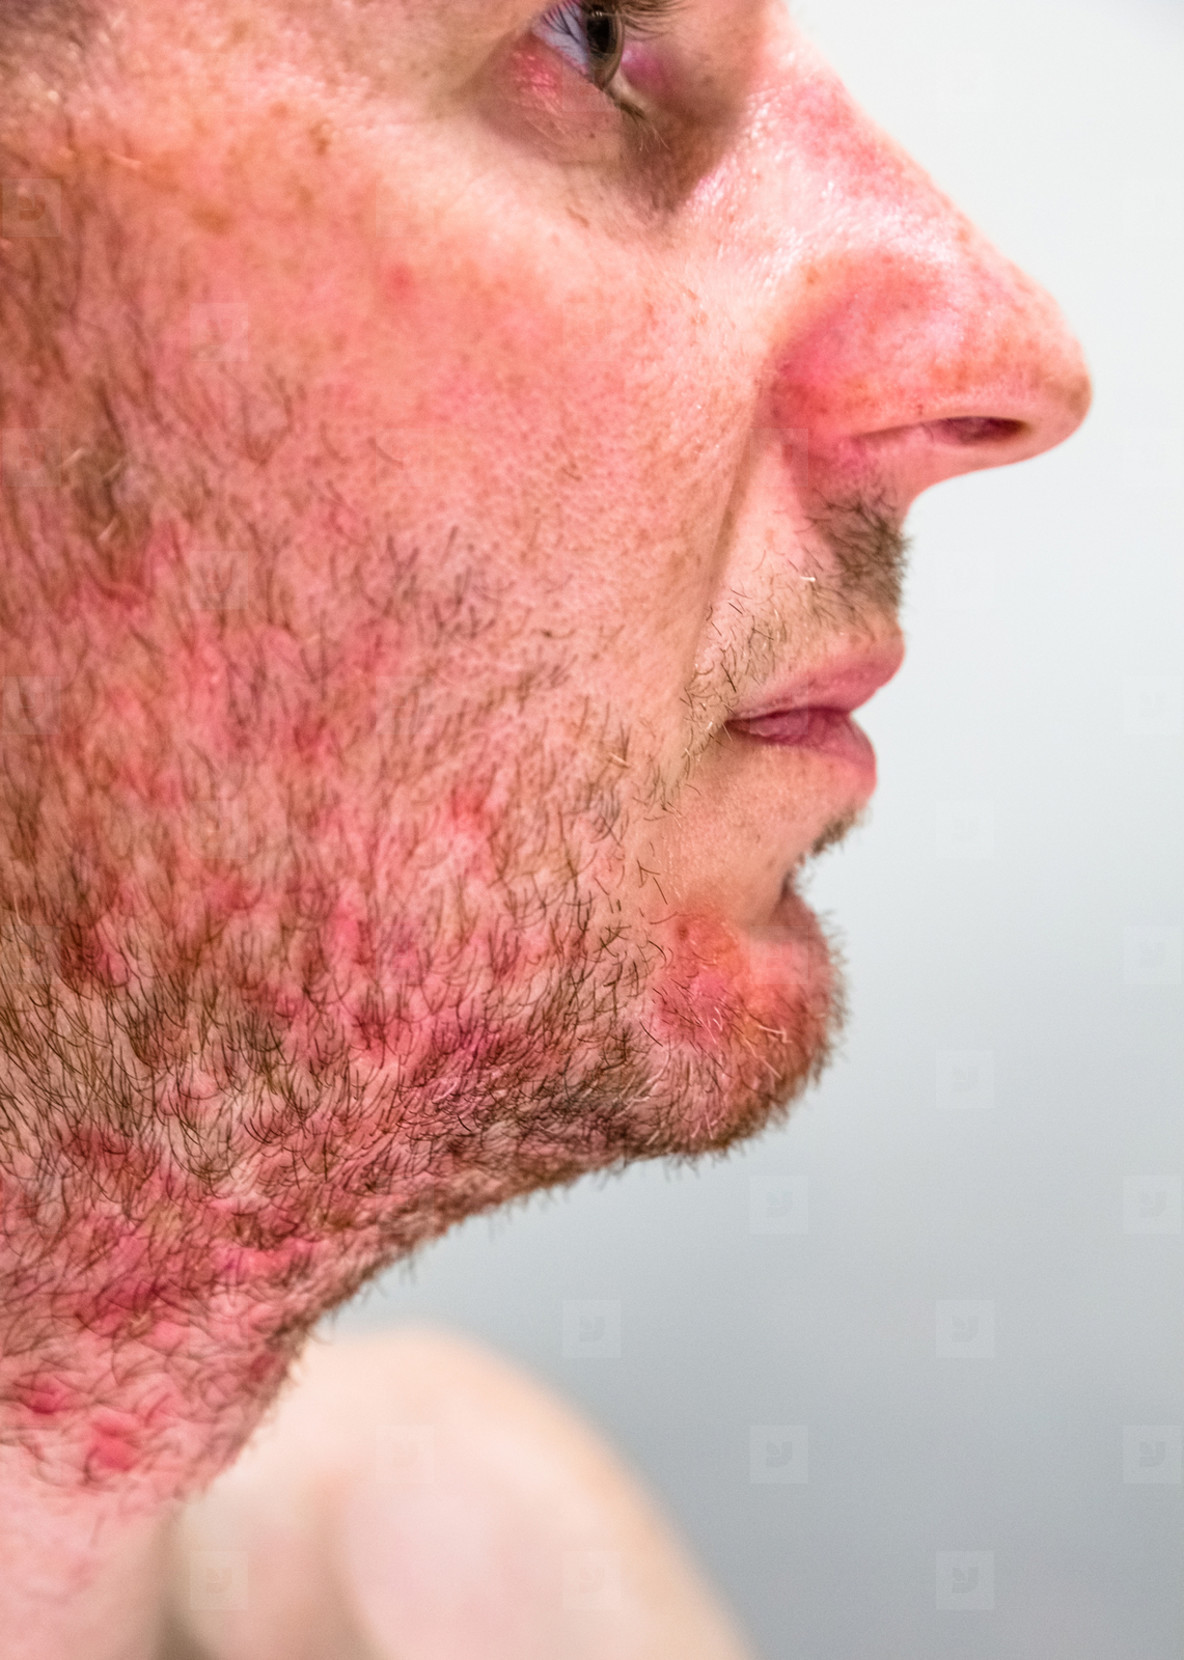 Man with seborrheic dermatitis in the beard area